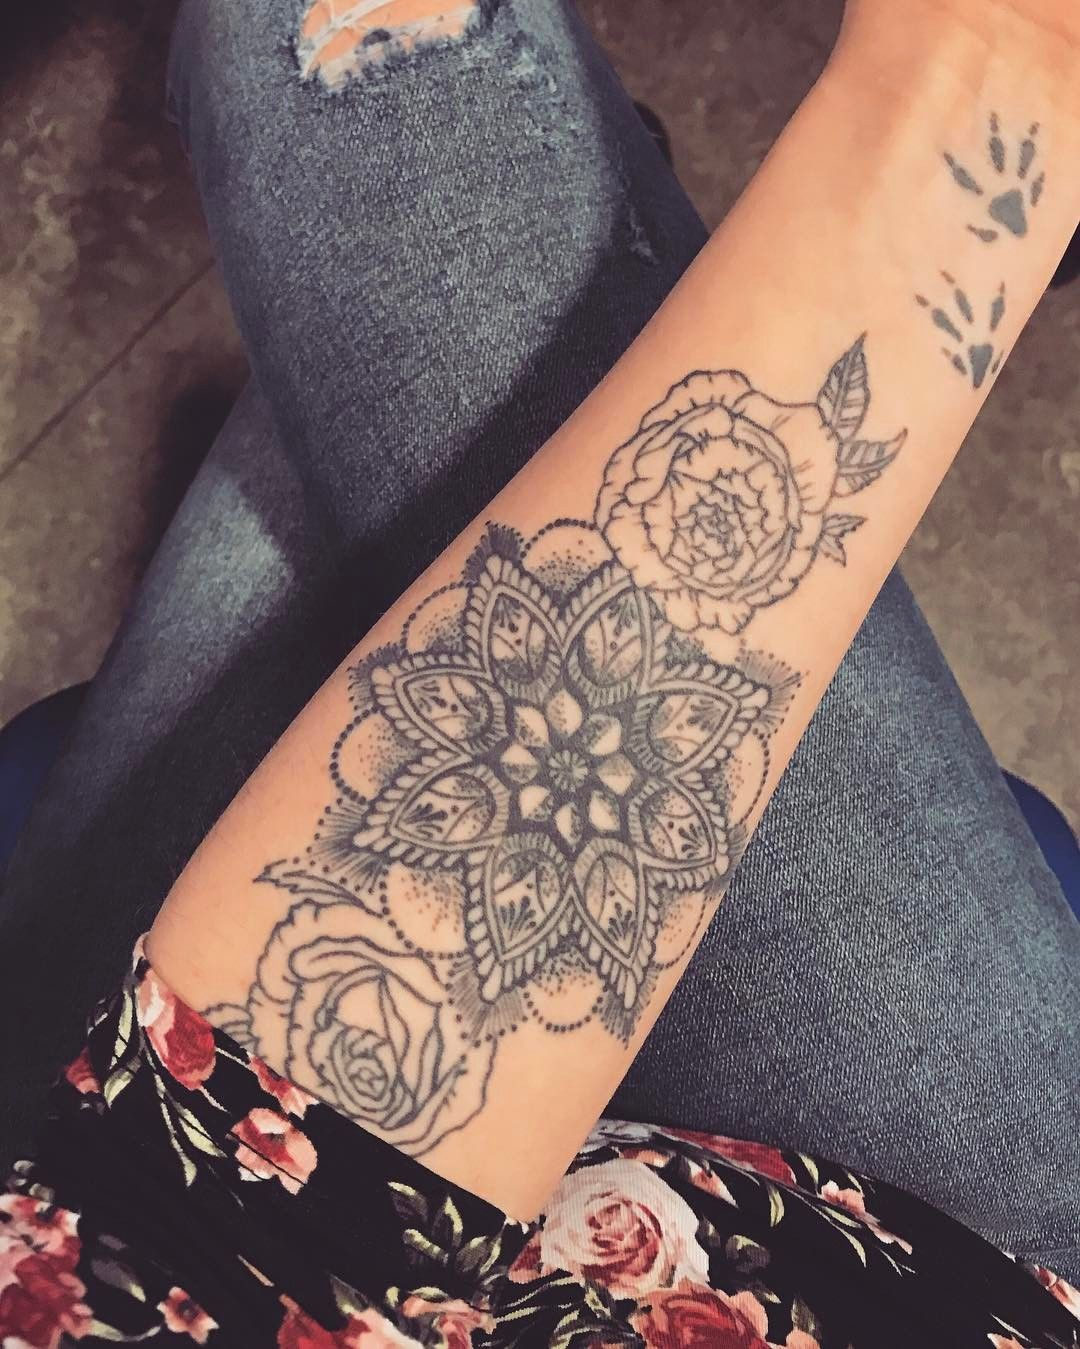 Tattoo Designs For Women 125 Stunning Arm Tattoos For Women